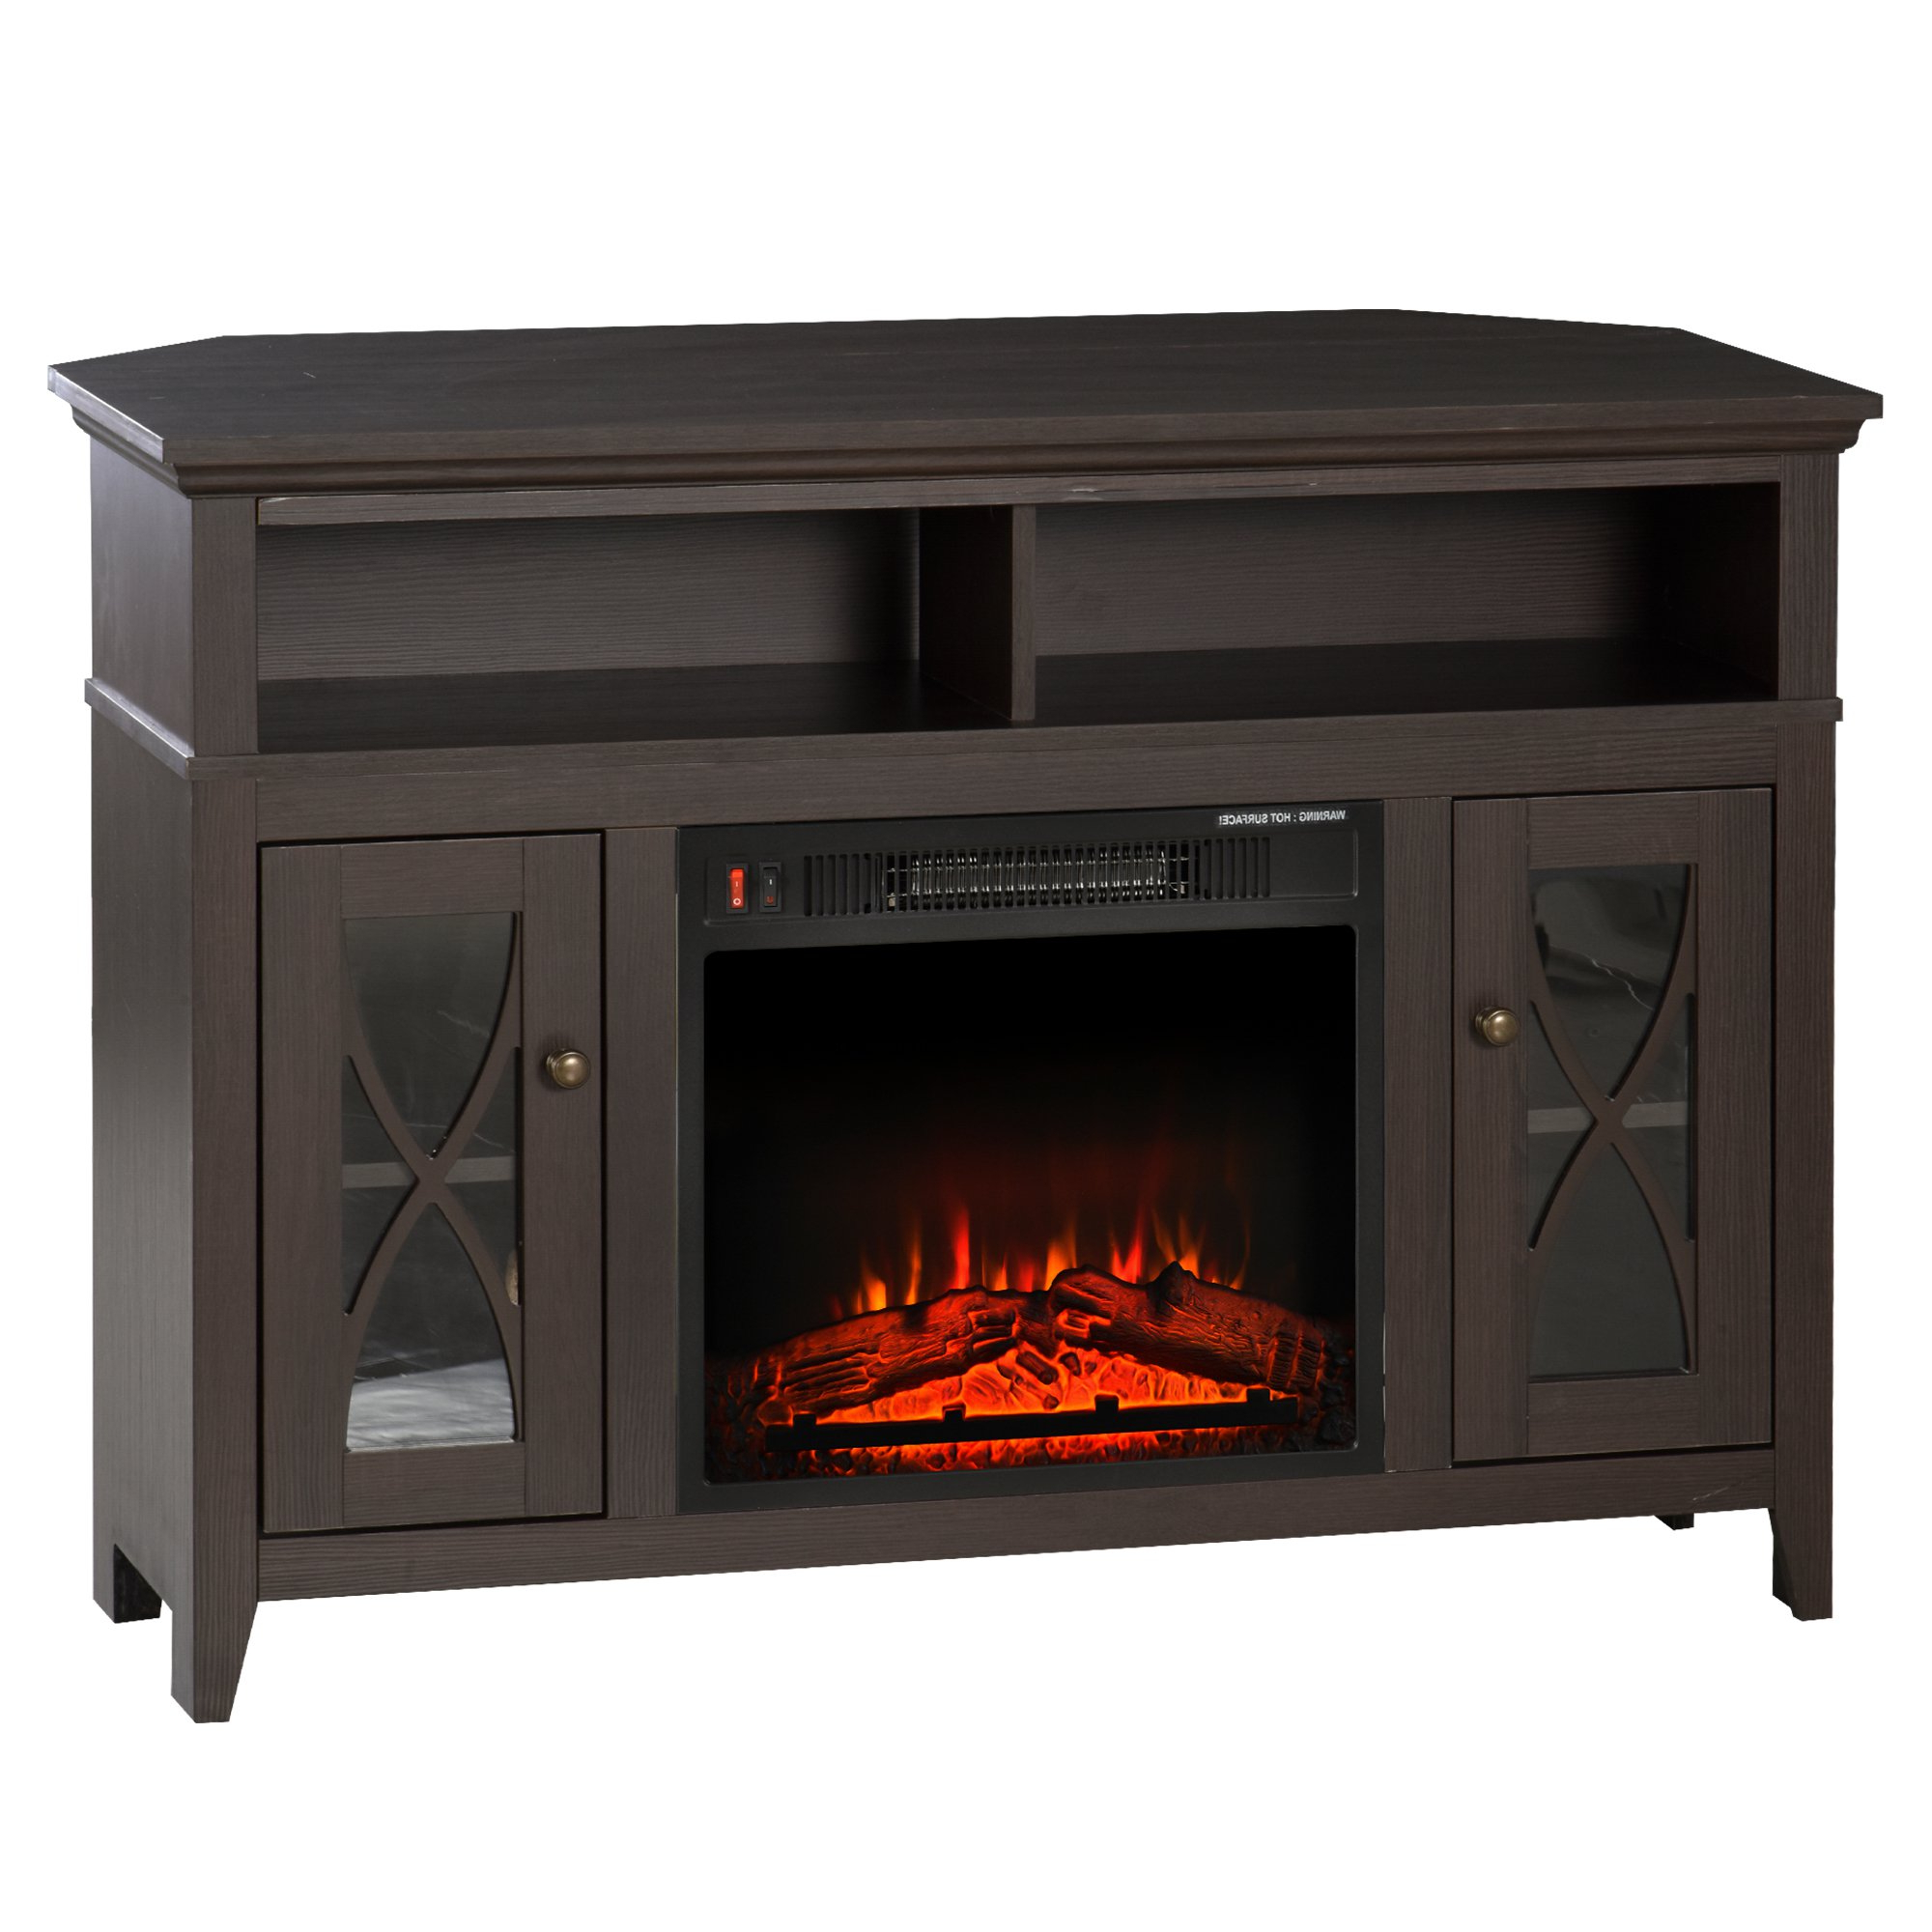 Homcom 2 In 1 Tv Stand And Electric Fireplace With 2 Cable With Regard To Well Known Electric Fireplace Tv Stands With Shelf (View 4 of 10)